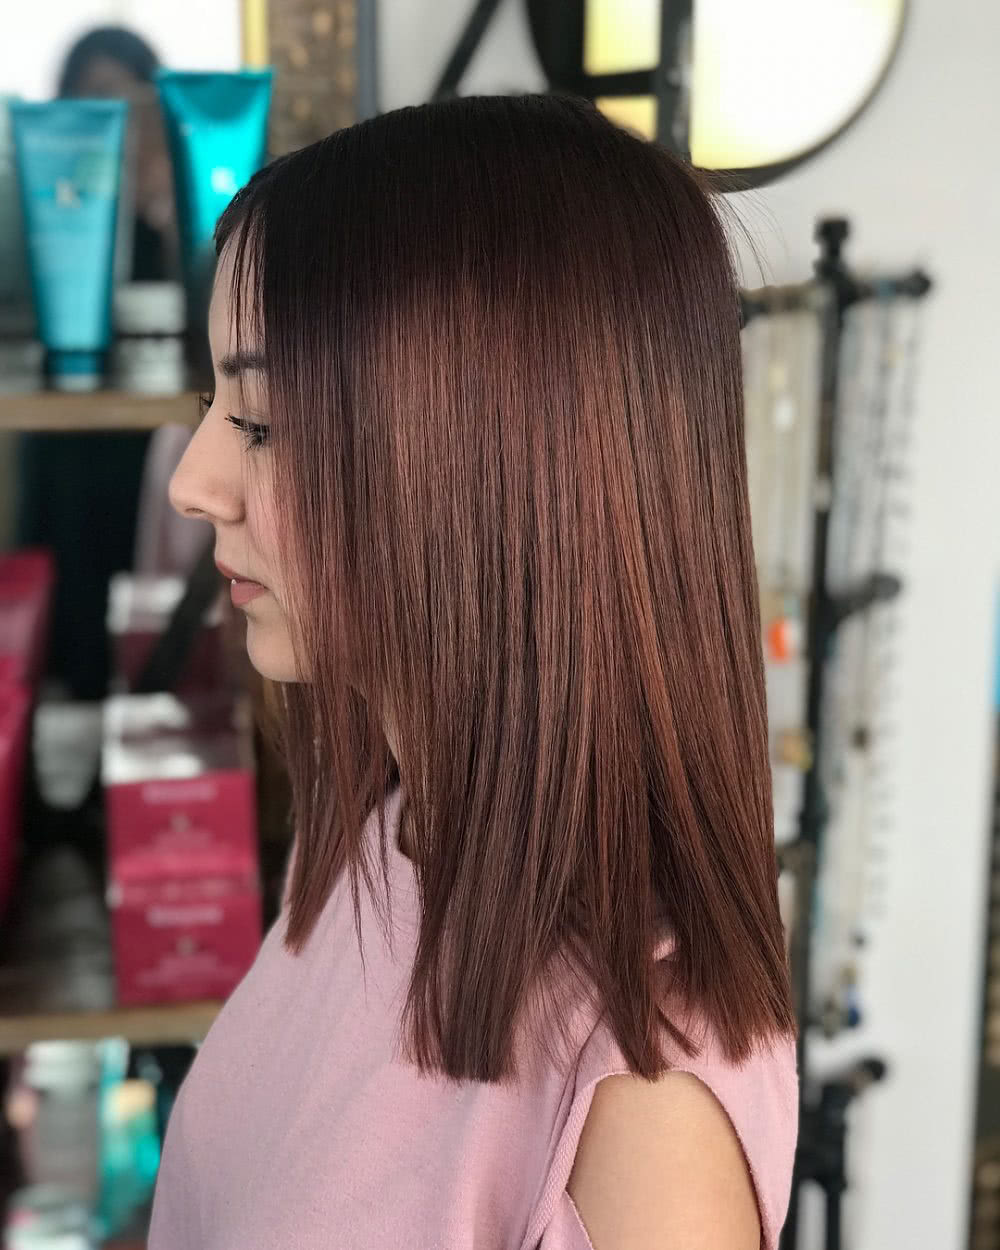 One-Length Lob hairstyle